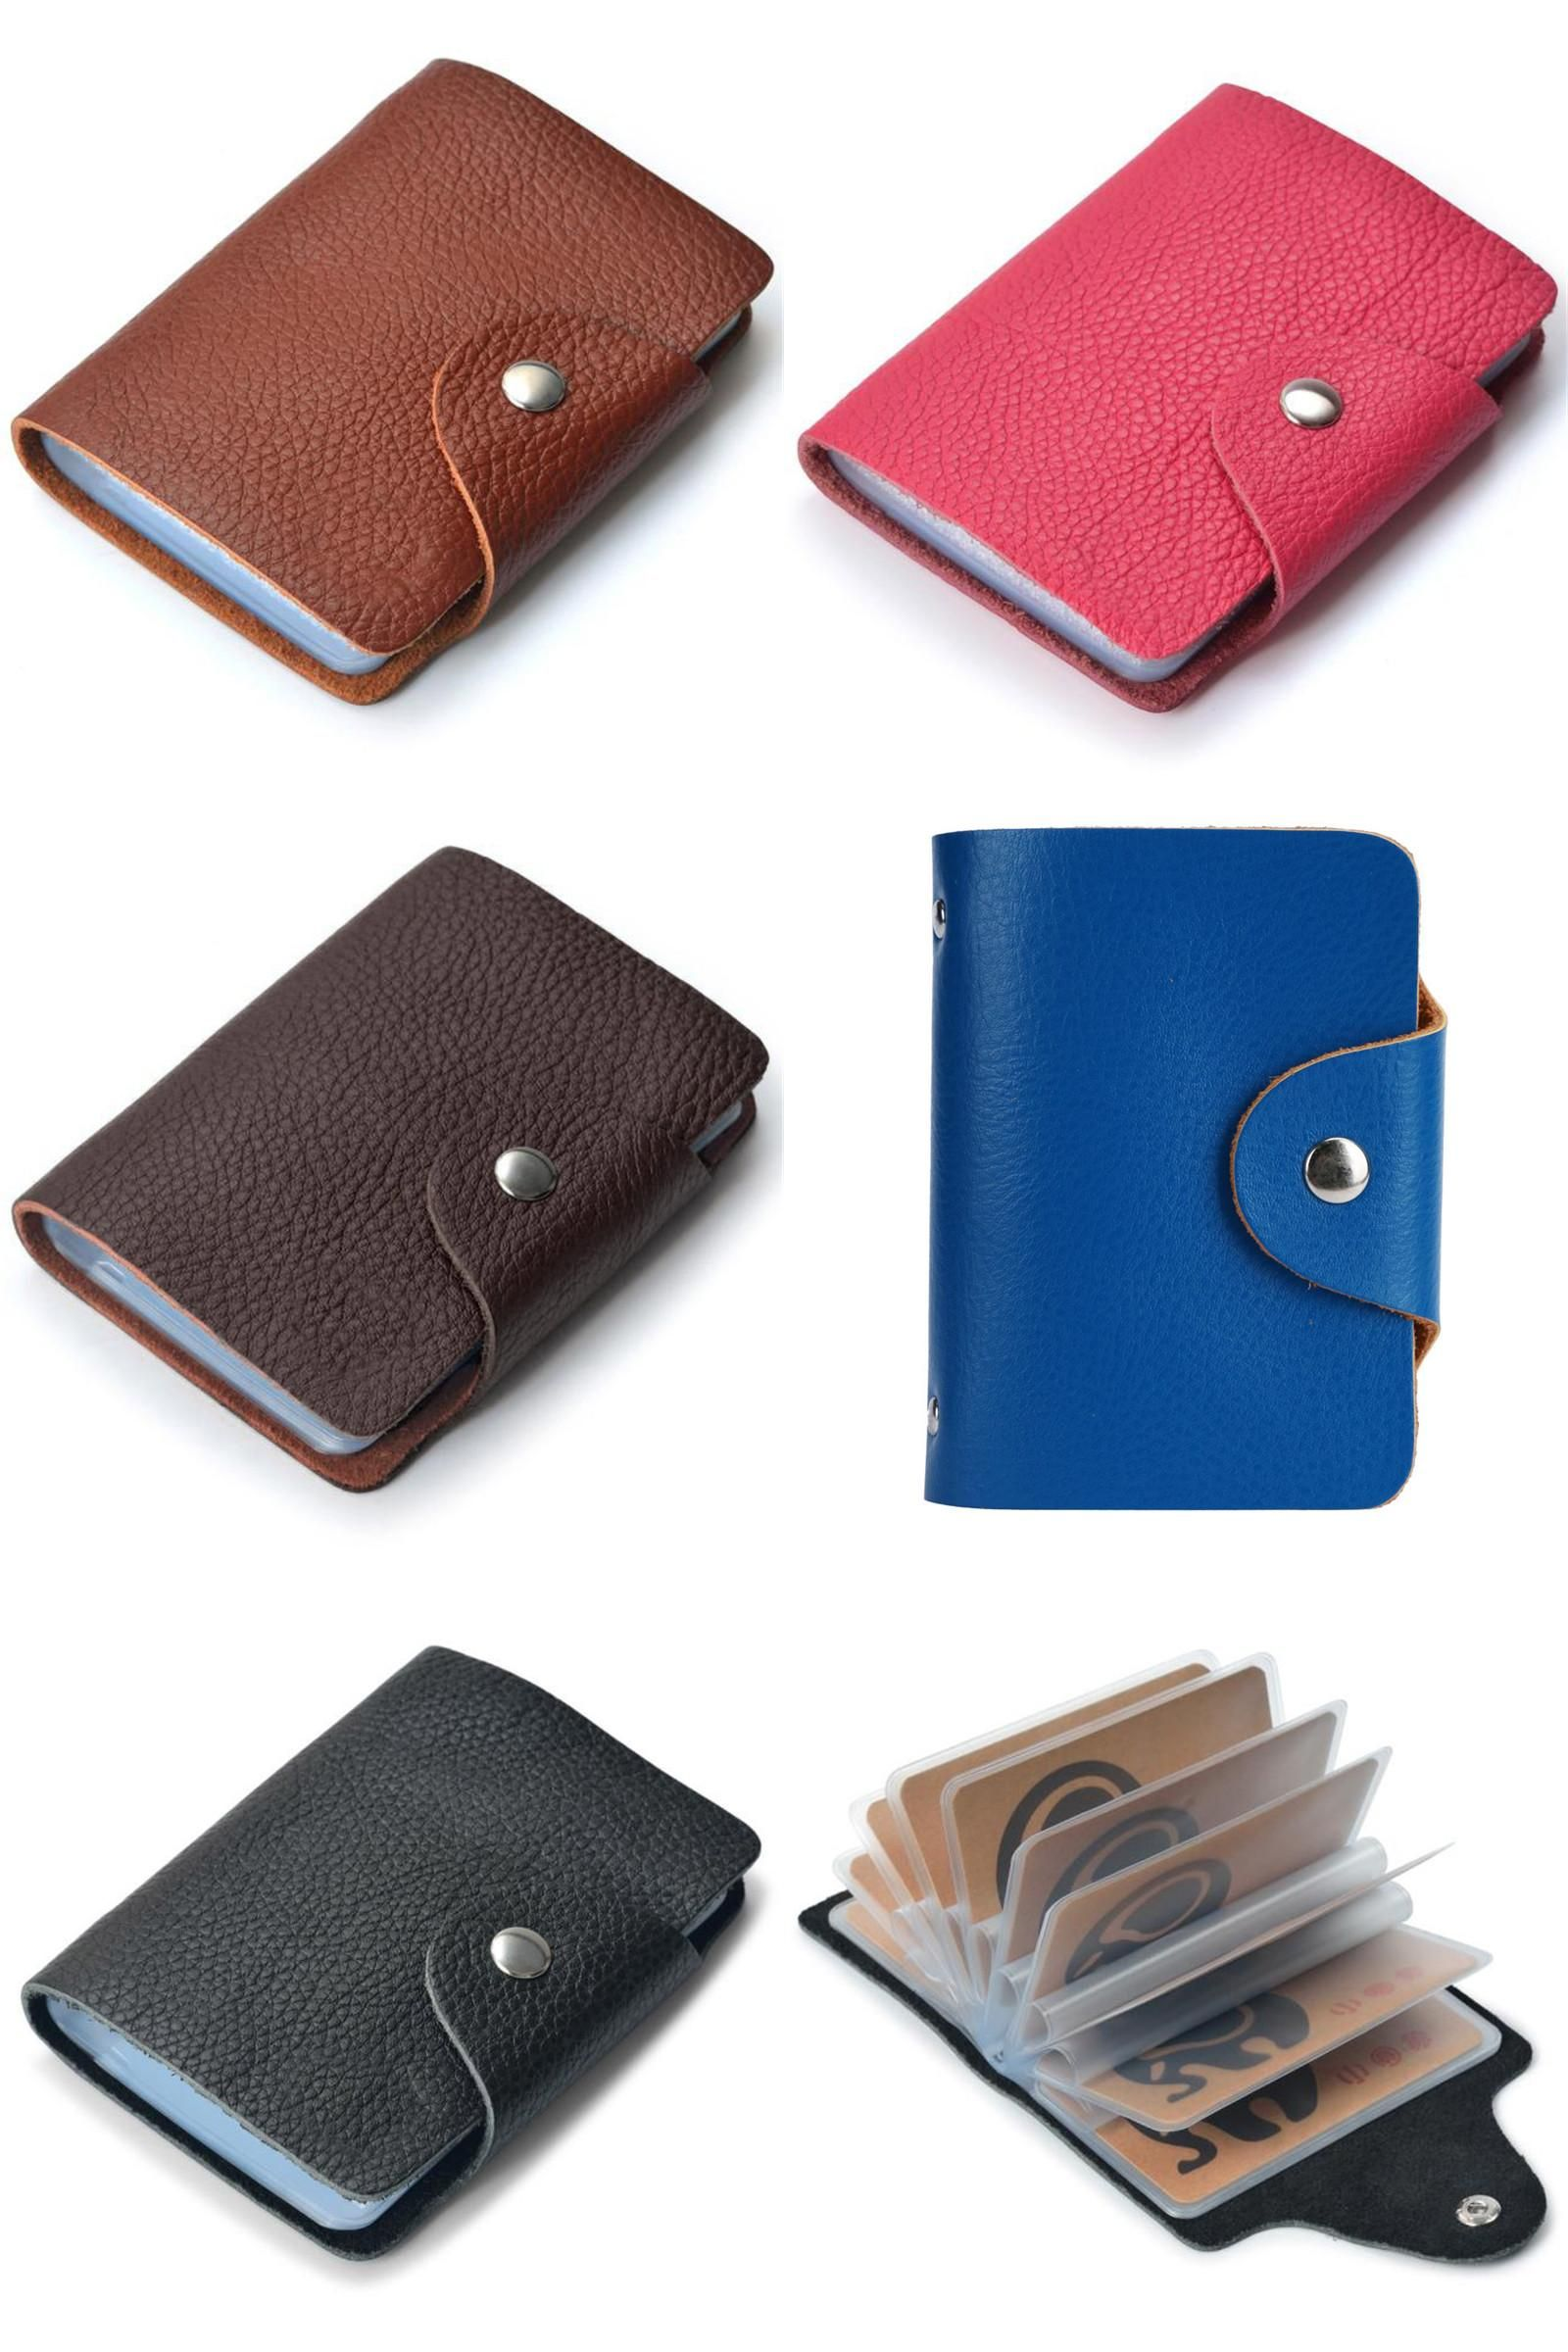 visit to ] 2017 uni new fashion credit card holder leather